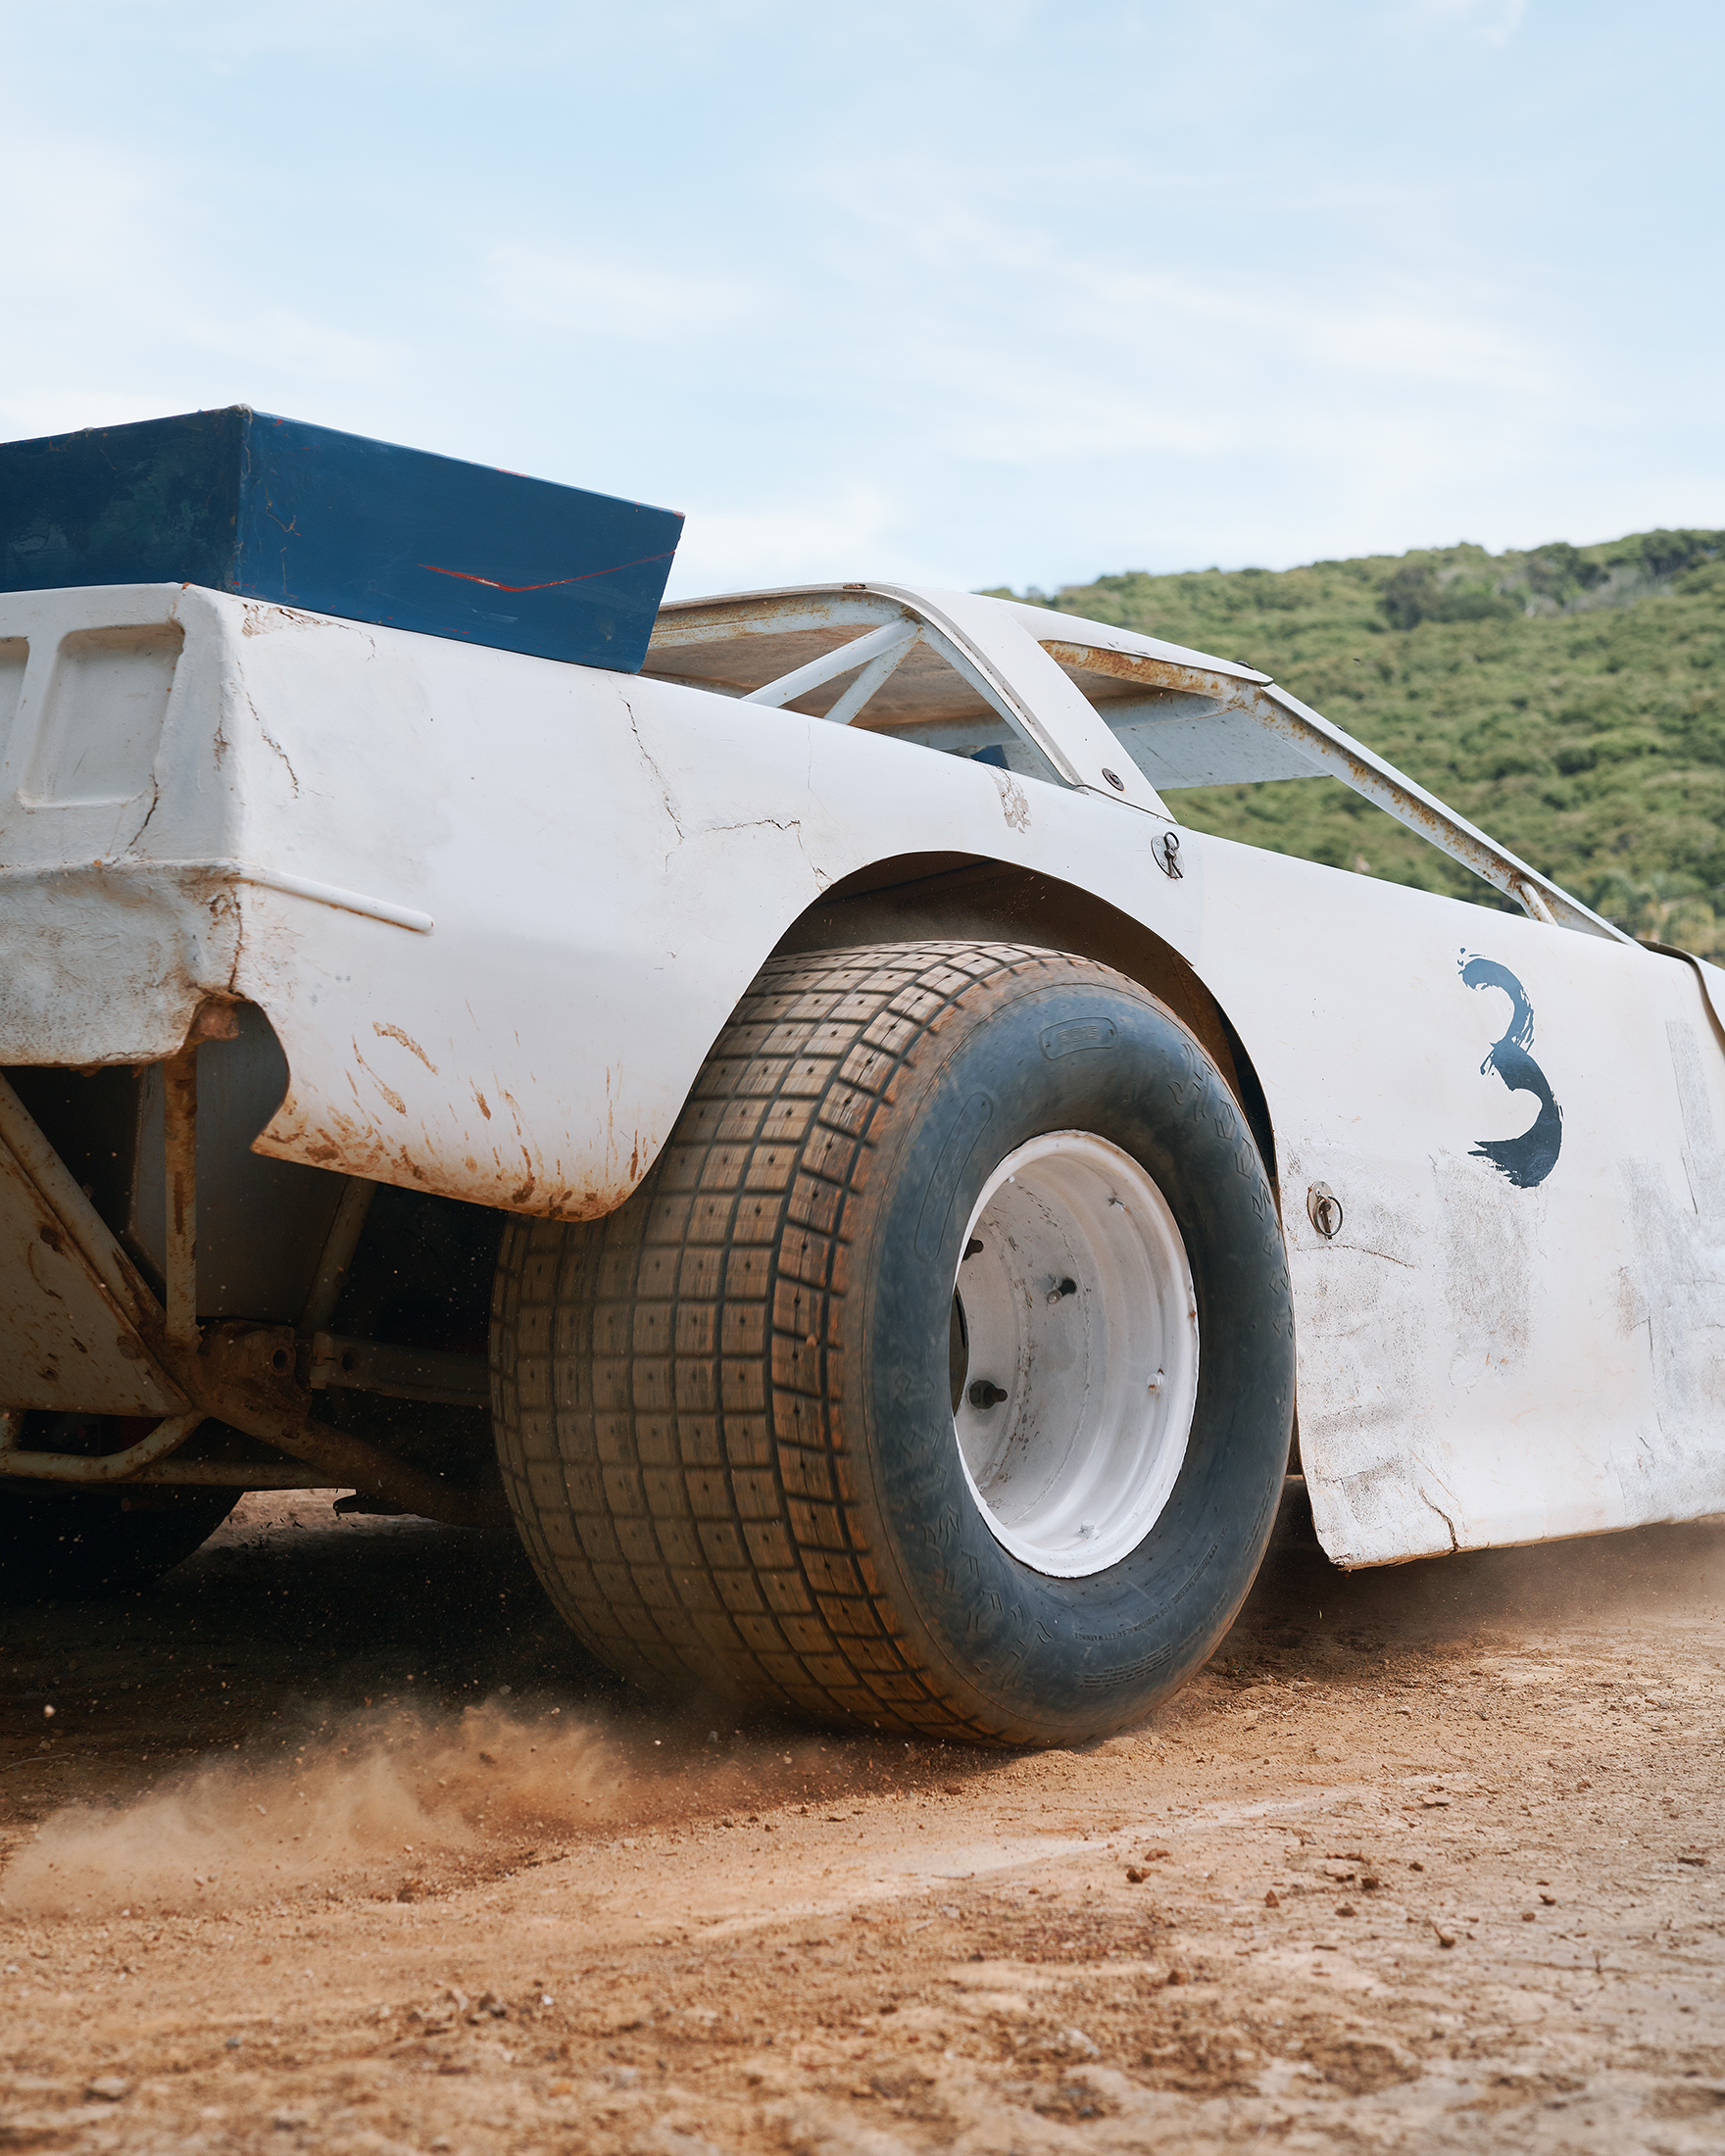 Dirt Track Club - Waiheke Island, New Zealand, 2018-19 (series of 20 images)